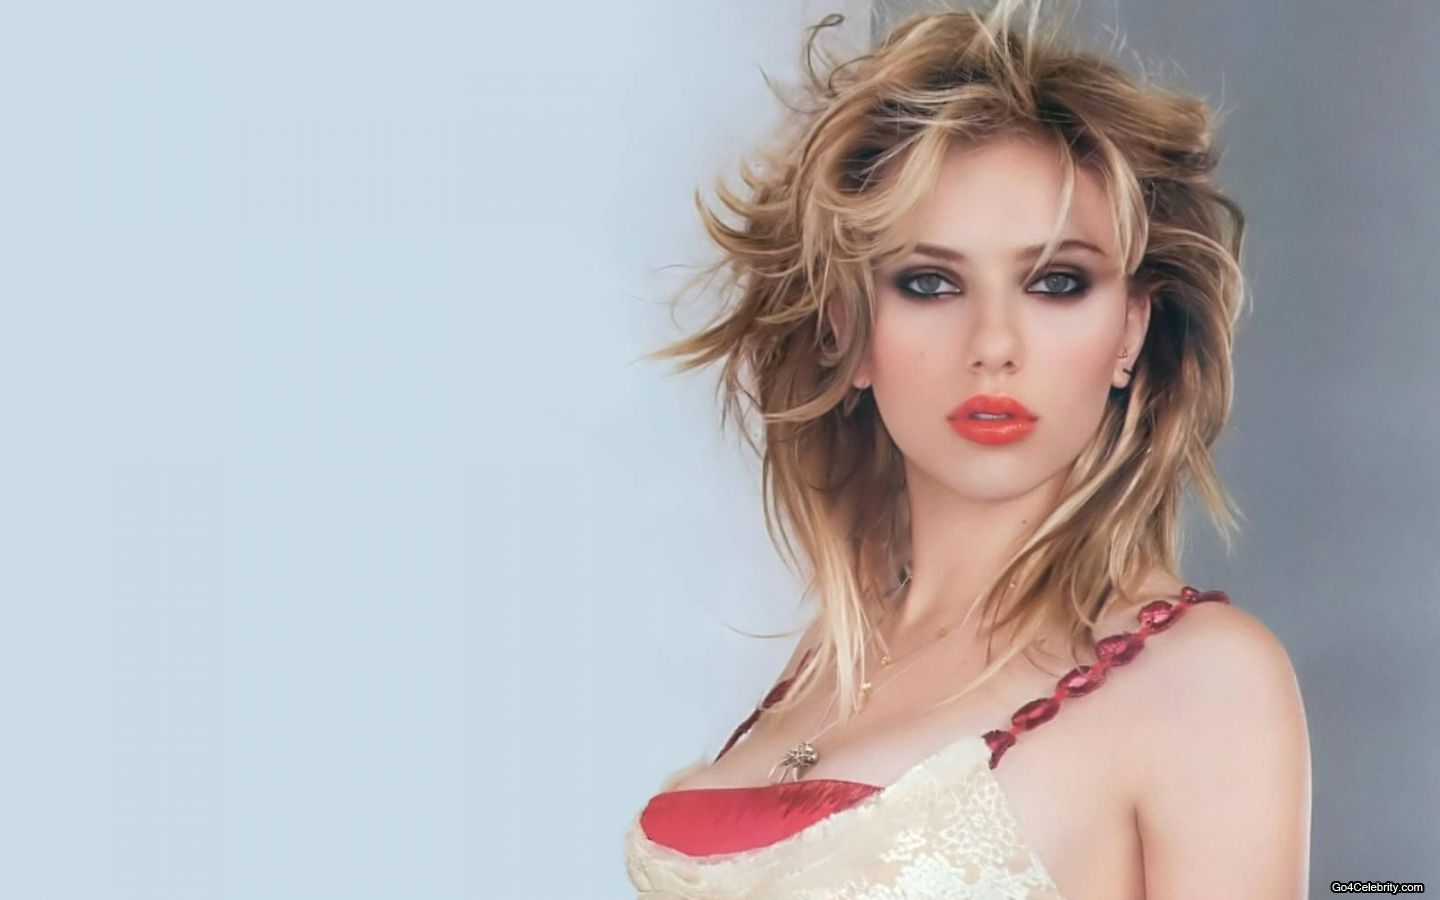 Scarlett Johansson Wallpaper: Fetch Free Wallpapers: Scarlett Johansson Wallpaper Pack 5